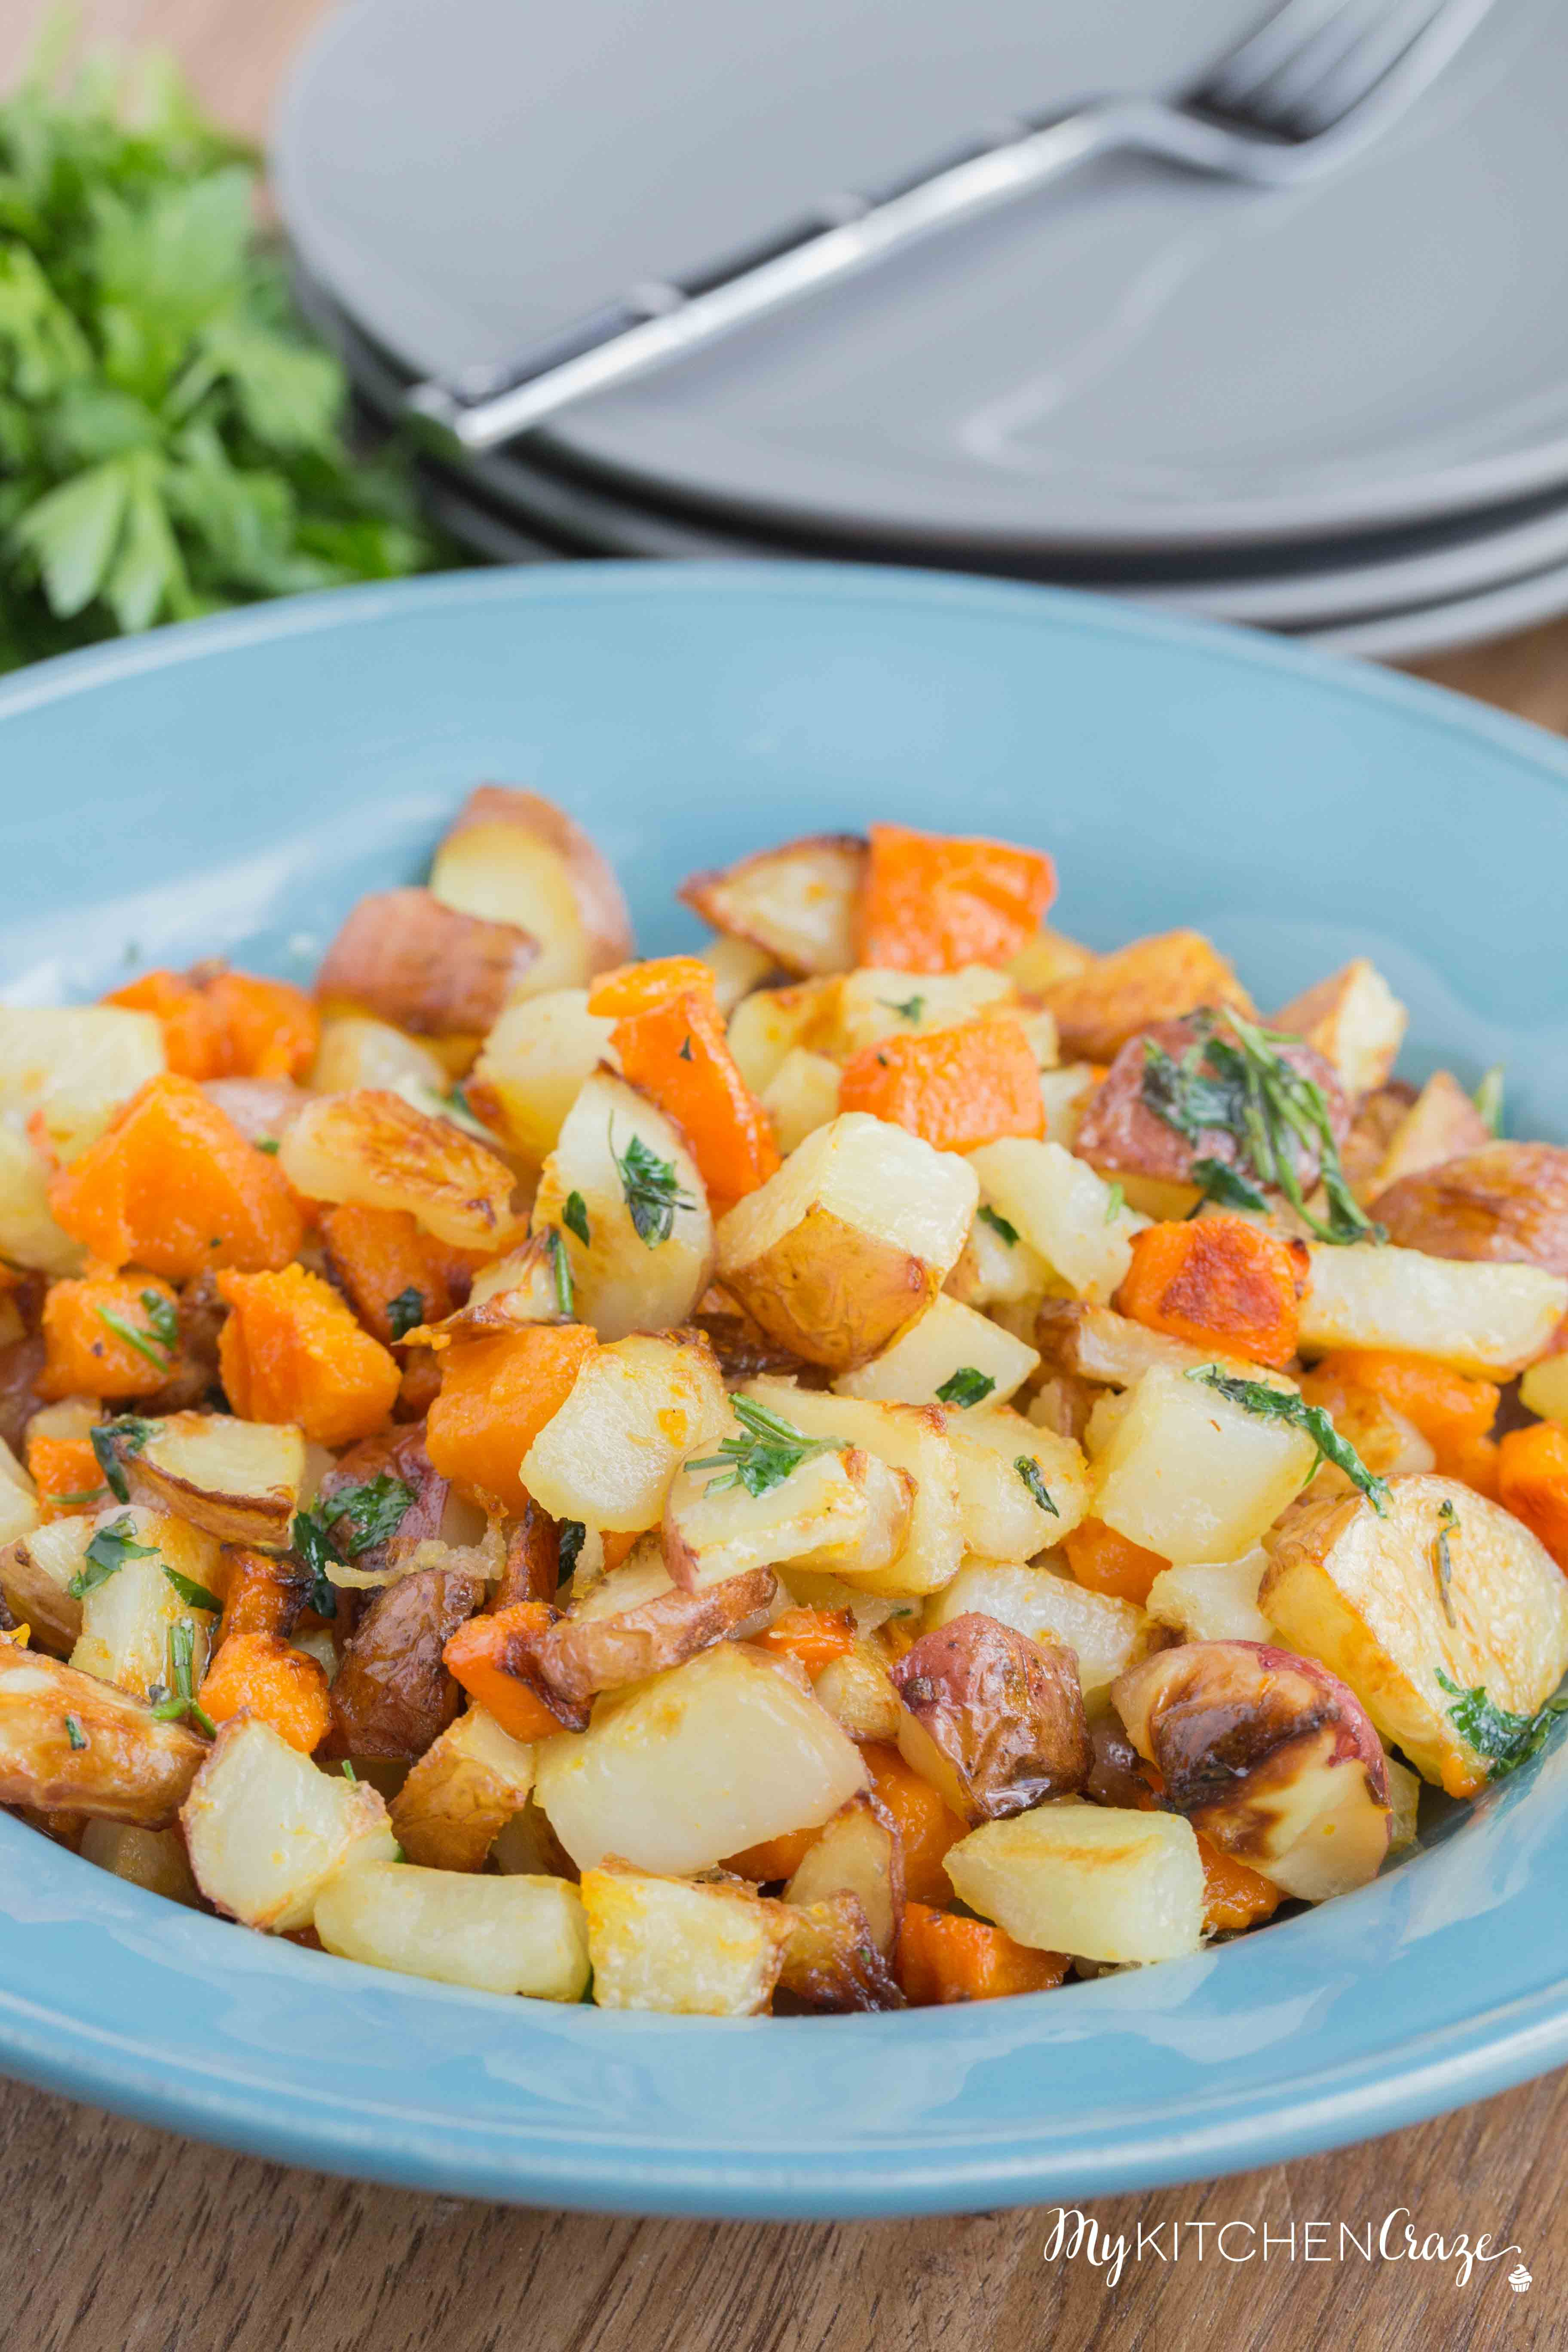 Roasted Herb Potato Medley ~ mykitchencraze.com ~ Perfect side dish to any main entree. Tender roasted potato medley, sprinkled with fresh herbs. Everyone will love this side!